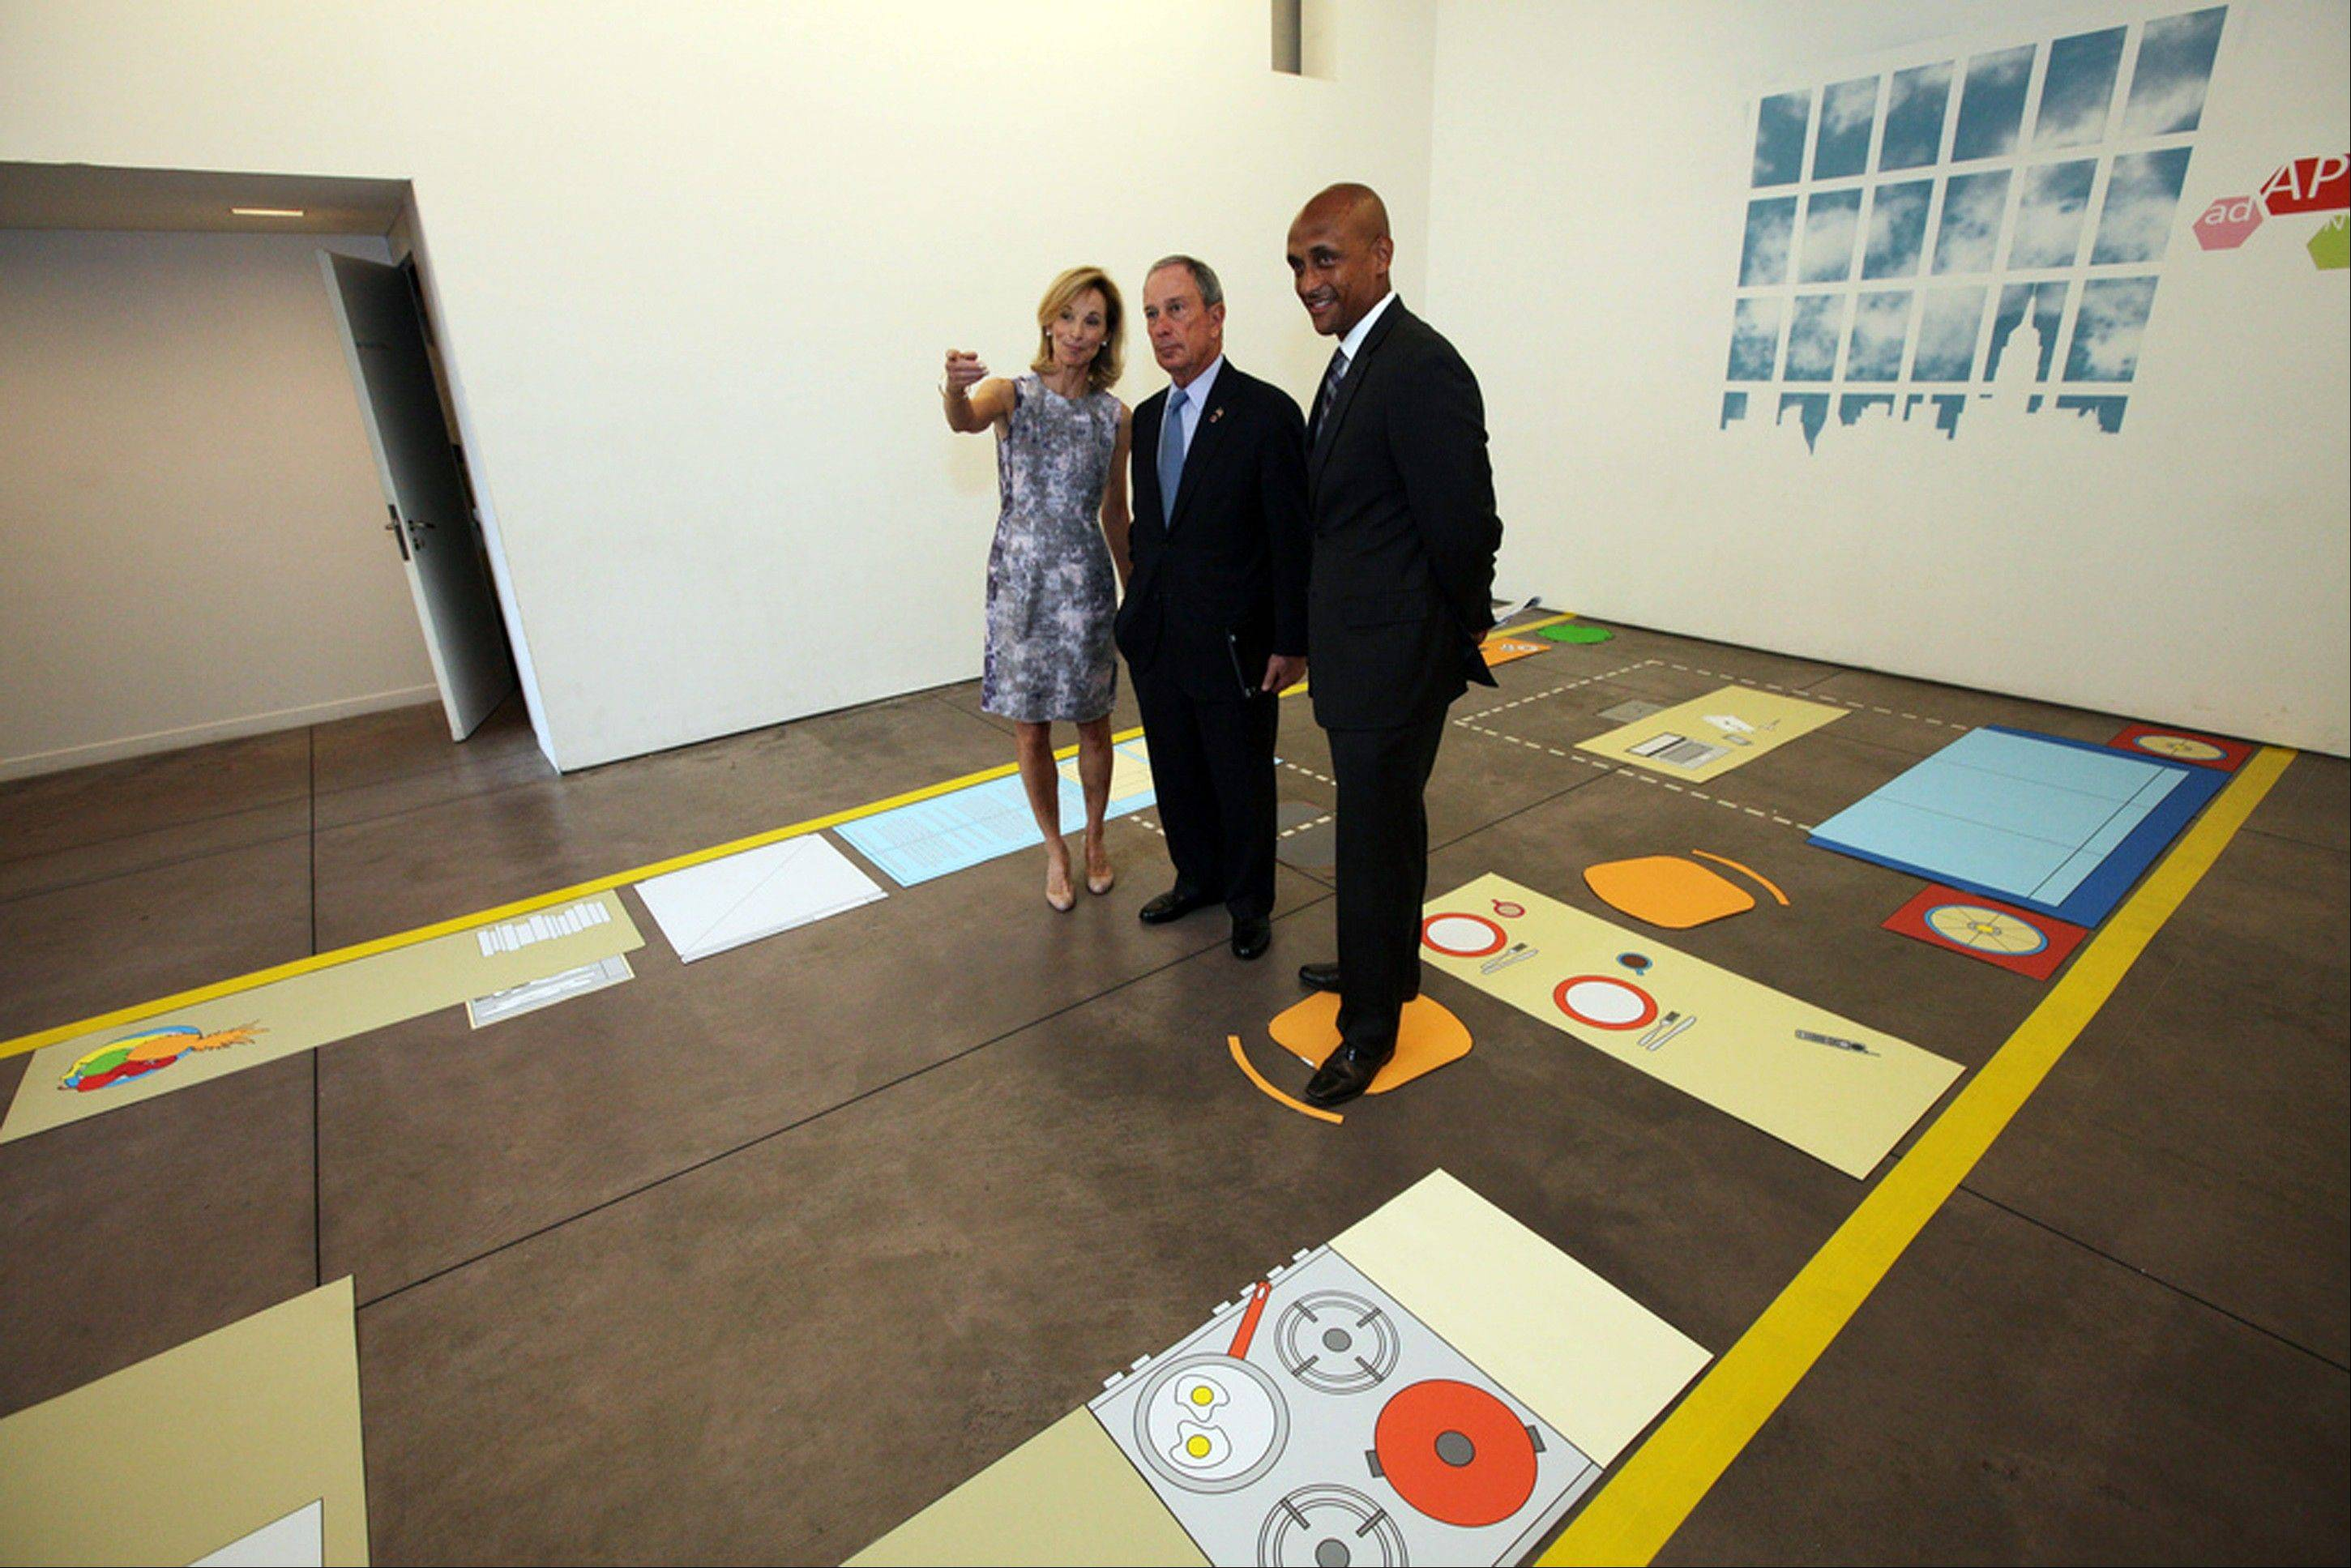 In this photo provided by the New York mayor's office, Mayor Michael Bloomberg, center, stands with Amanda Burden, left, department of city planning director, and Commissioner Mathew Wambua, department of housing preservation and development, in the kitchenette area of a full-scale mock-up of a 300-square-foot-apartment on Monday in New York. The city is asking developers to propose ways to build such tiny units in the hopes of changing city code to accommodate cash-strapped singles and couples.